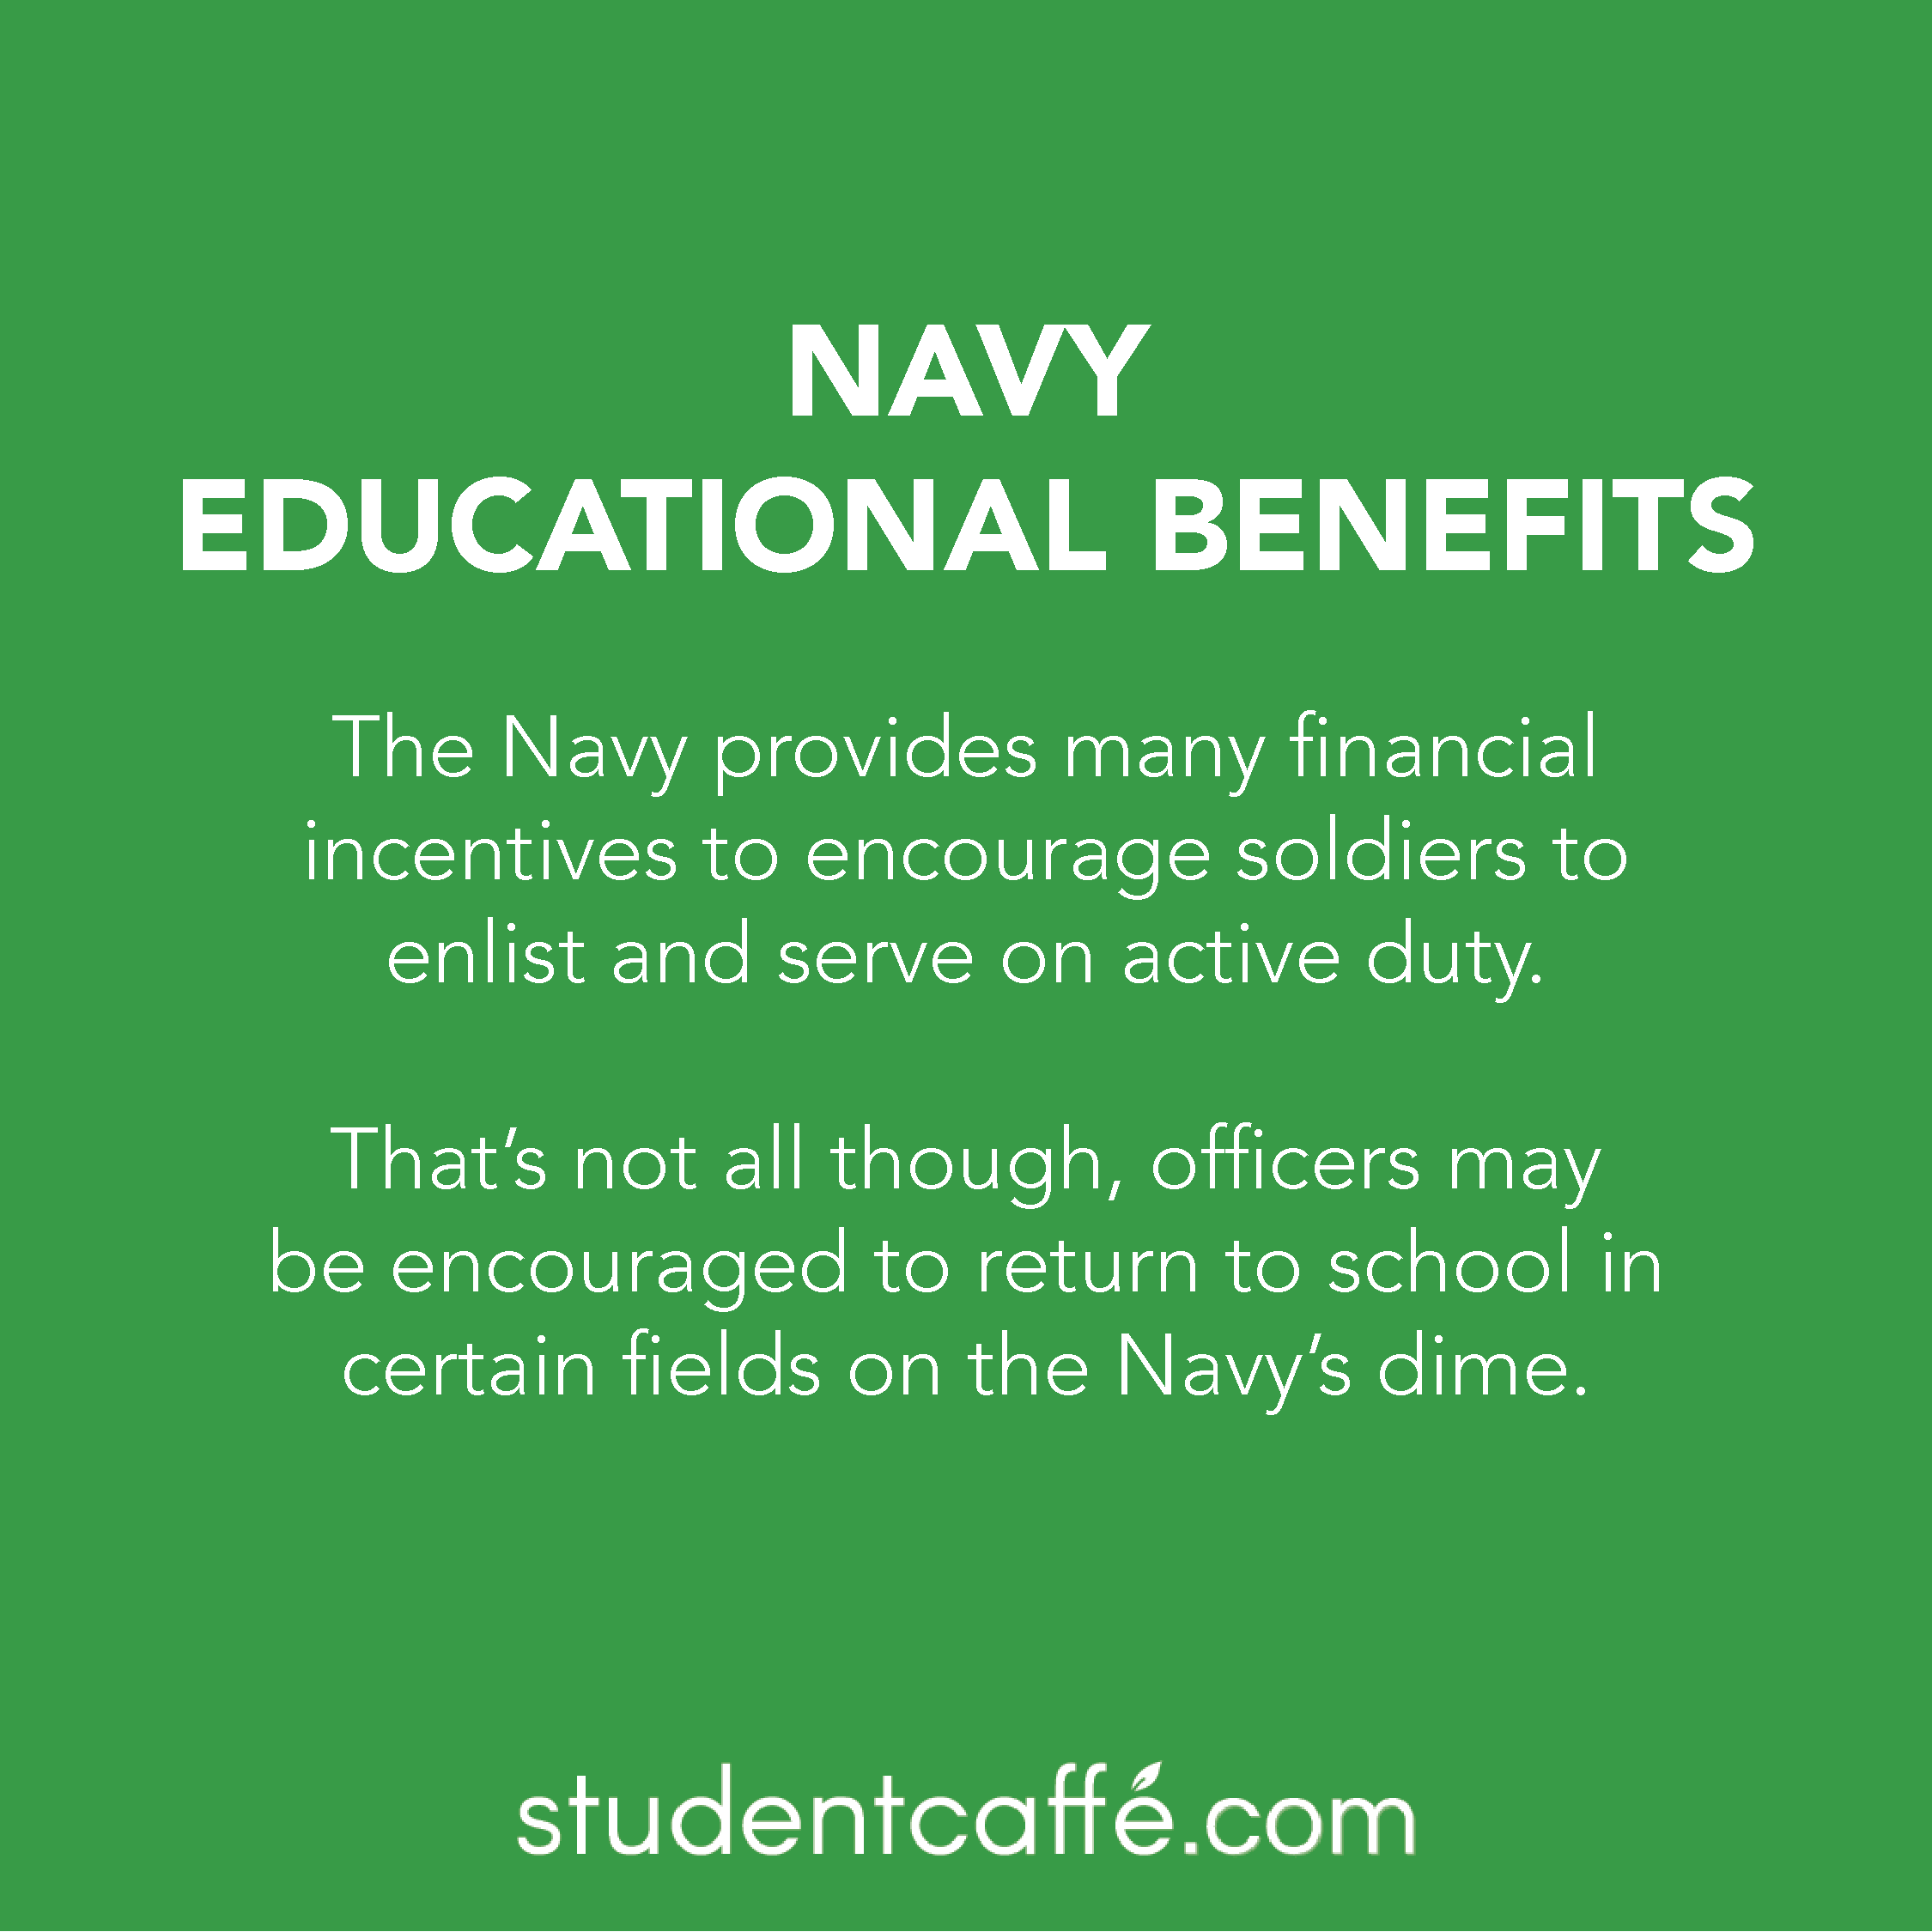 Navy Educational Benefits Education Tuition Assistance Incentive